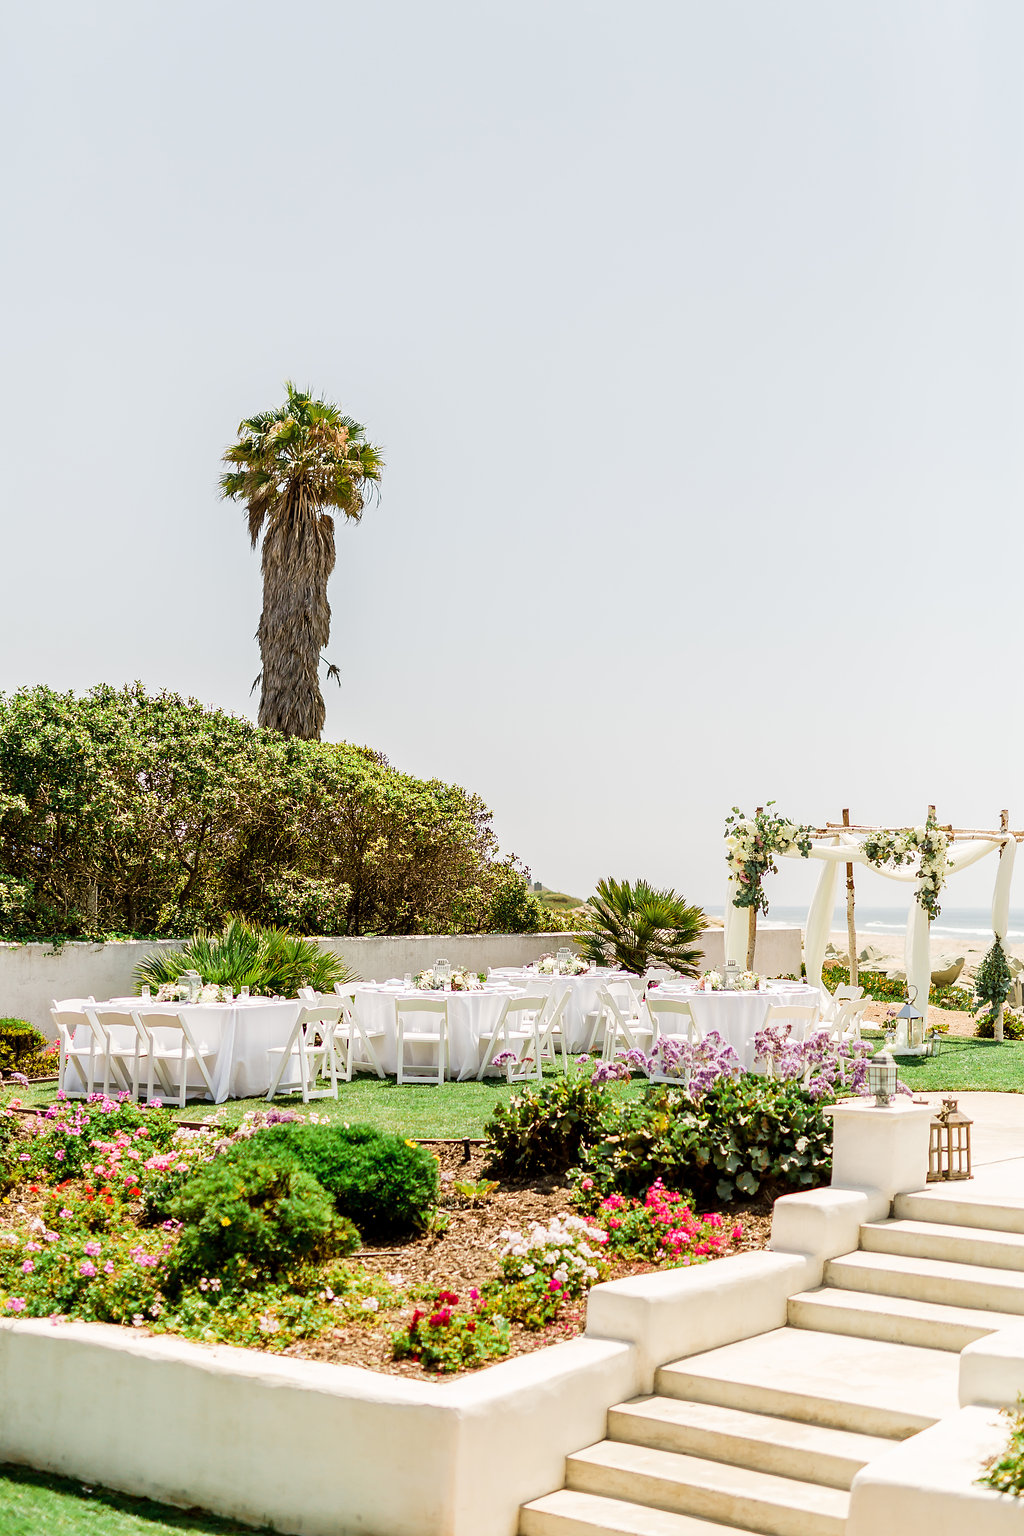 santa-barbara-elopement-wedding-planner-coordinator-day-of-elope-beach-beachfront-private-ocean-view-garden (13).jpg